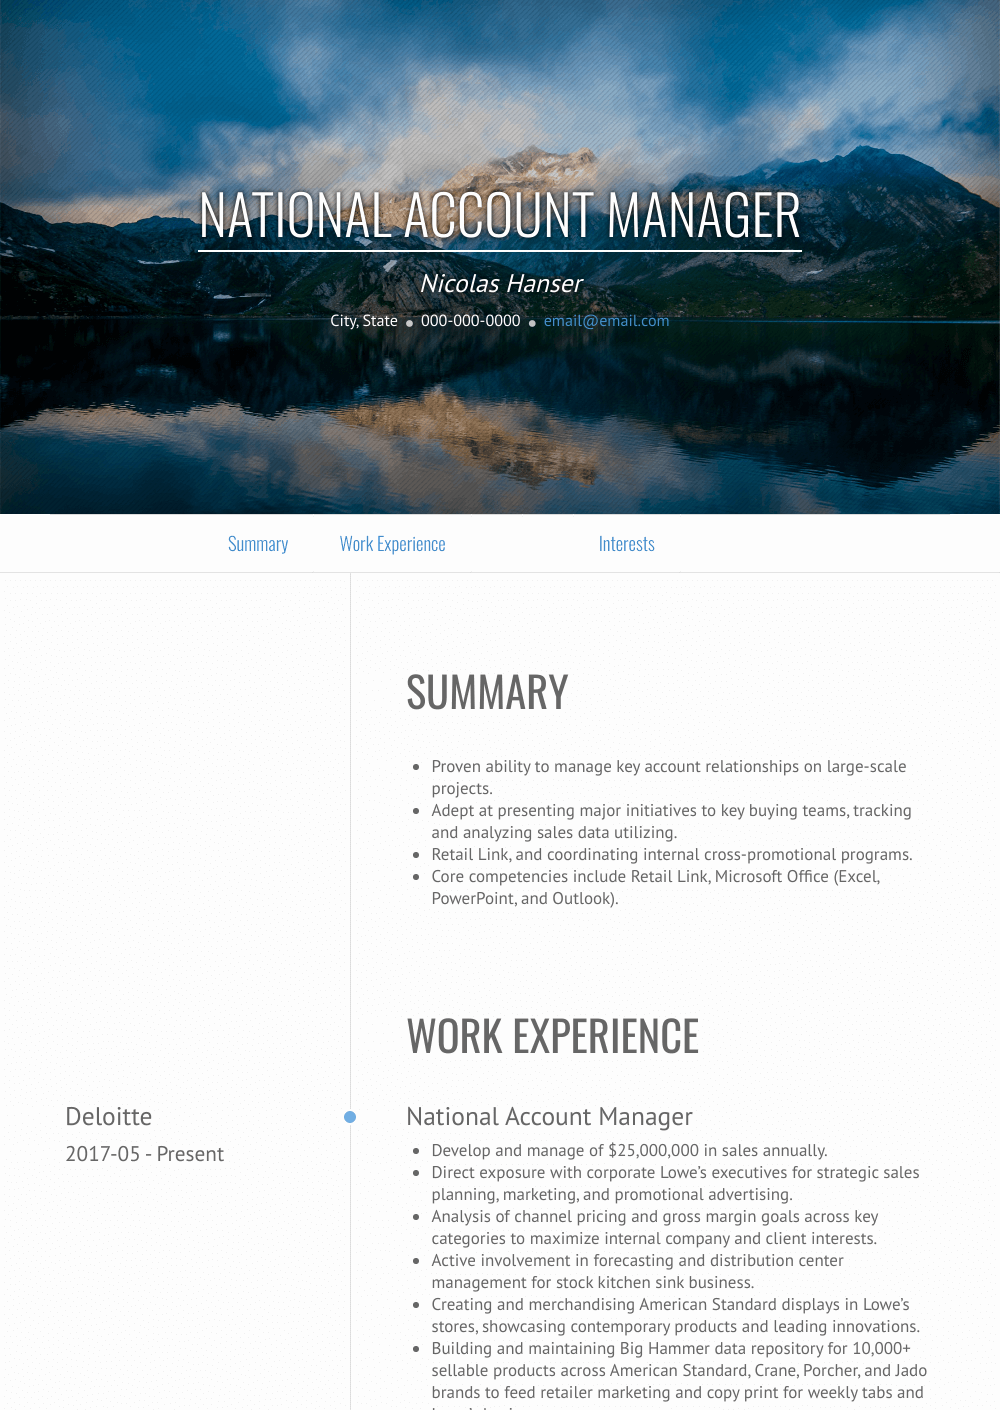 National Account Manager Resume Samples Amp Templates